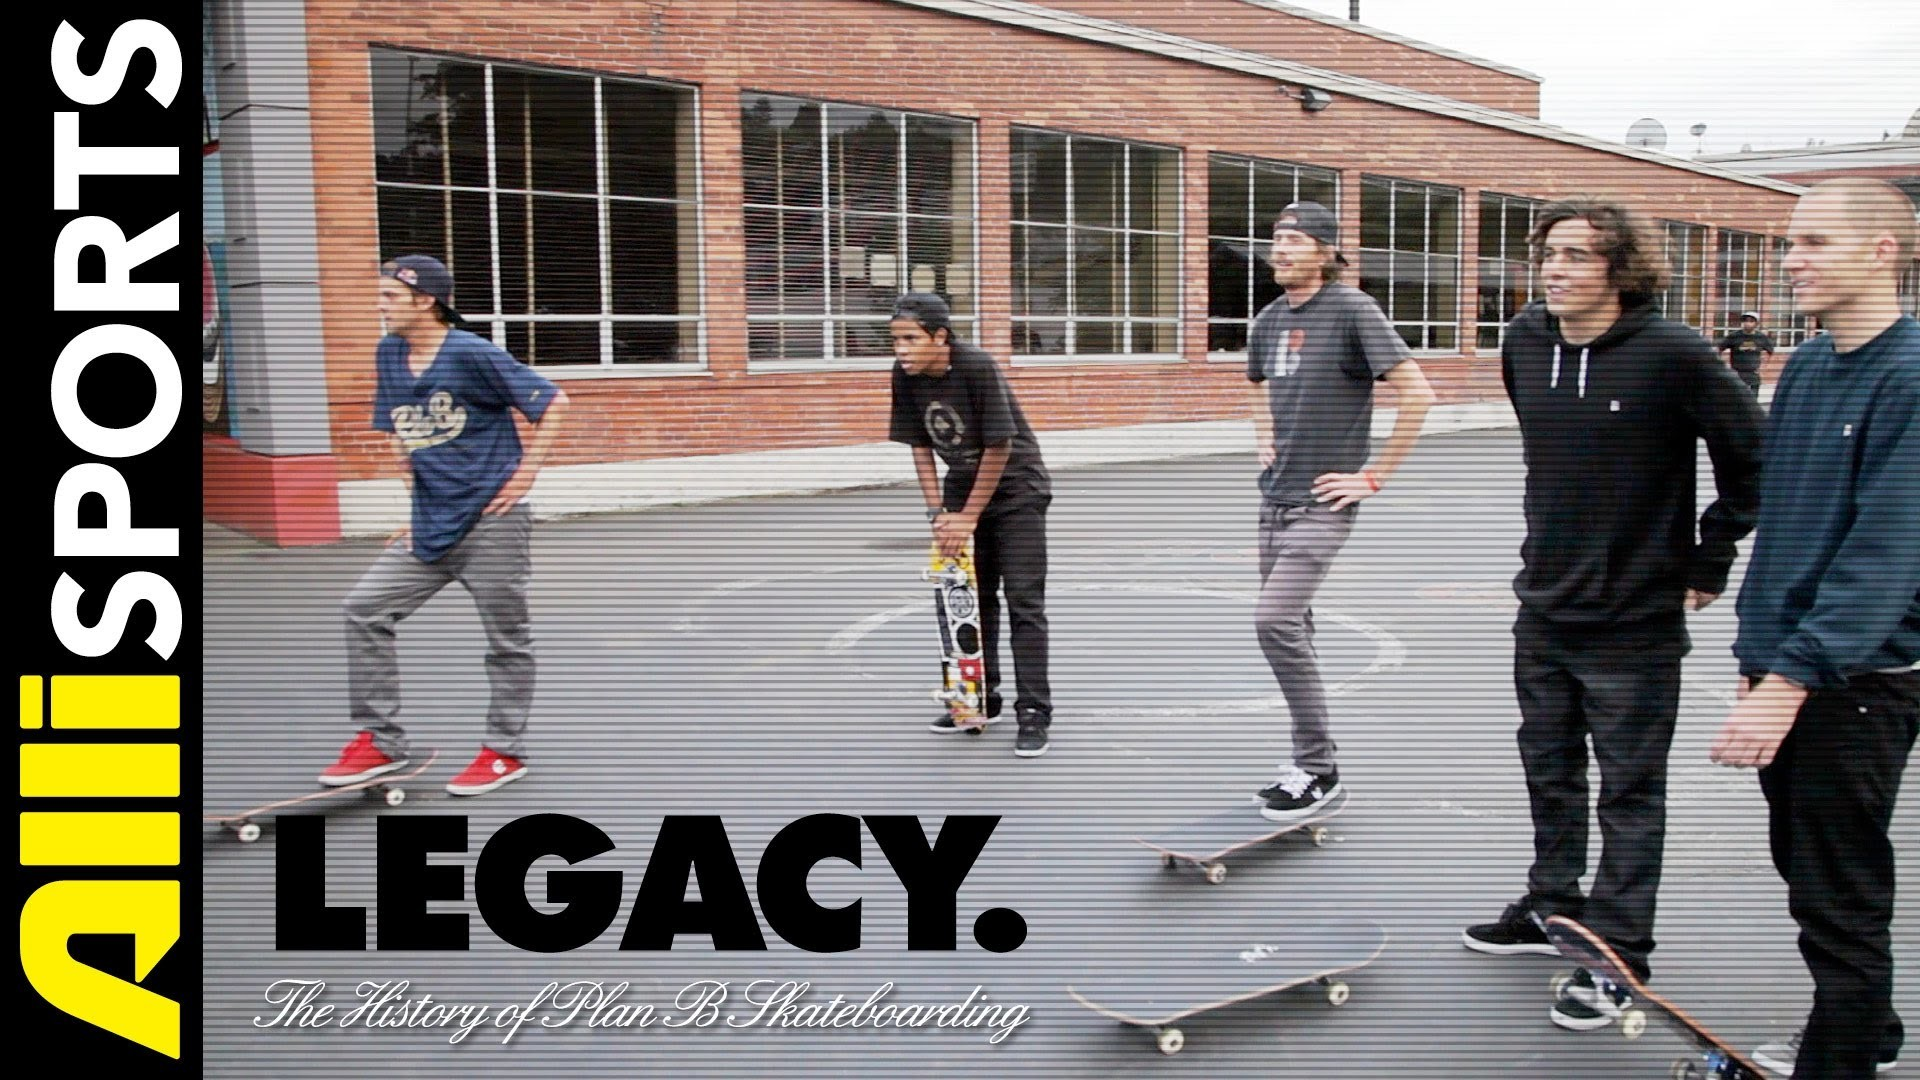 1920x1080 Plan B On The Road in Seattle | Legacy. The History of Plan B Skateboarding  - YouTube